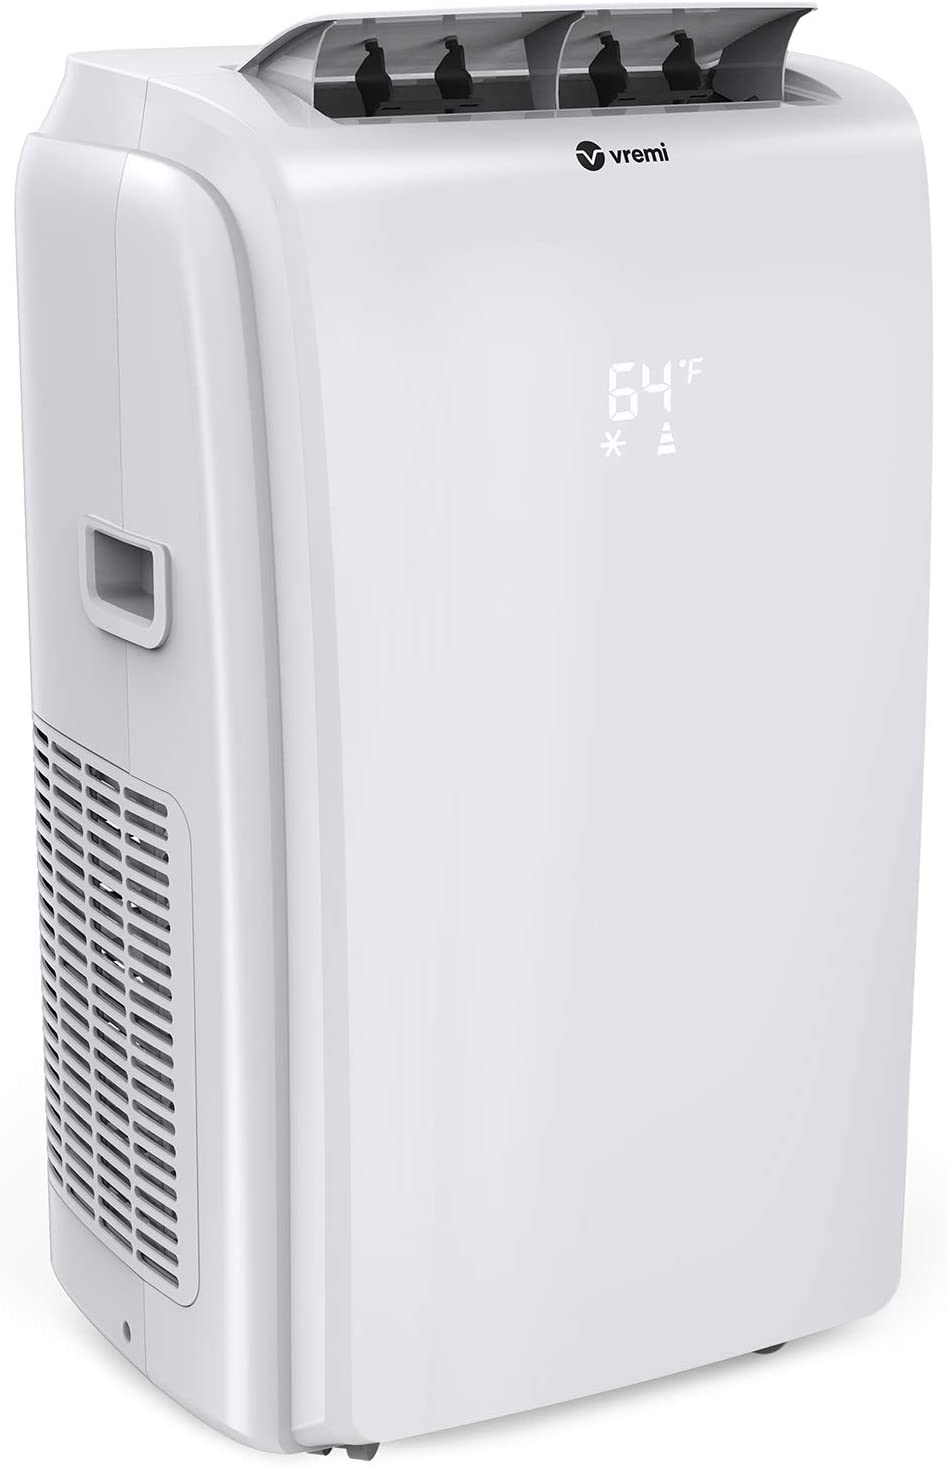 Vremi 12,000 BTU Portable Air Conditioner with Heater Mode - Conveniently Cools Rooms 350 to 500 Square Feet - LED Display, Auto Shut-Off, Remote and Dehumidifier Function